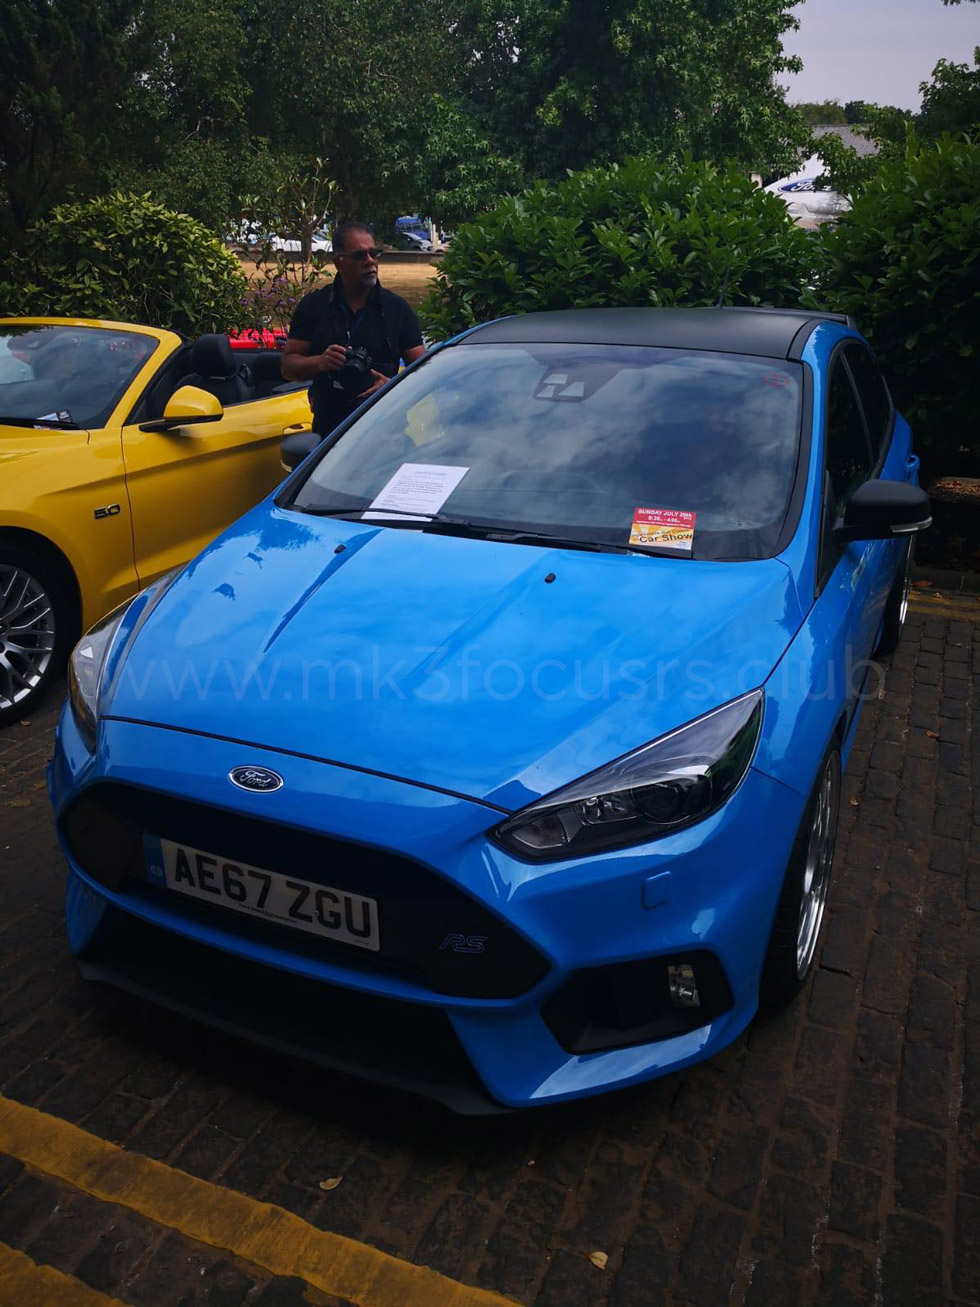 Nitrous Blue Focus Rs : nitrous, focus, Focus, Evocation, Special, Edition, Model